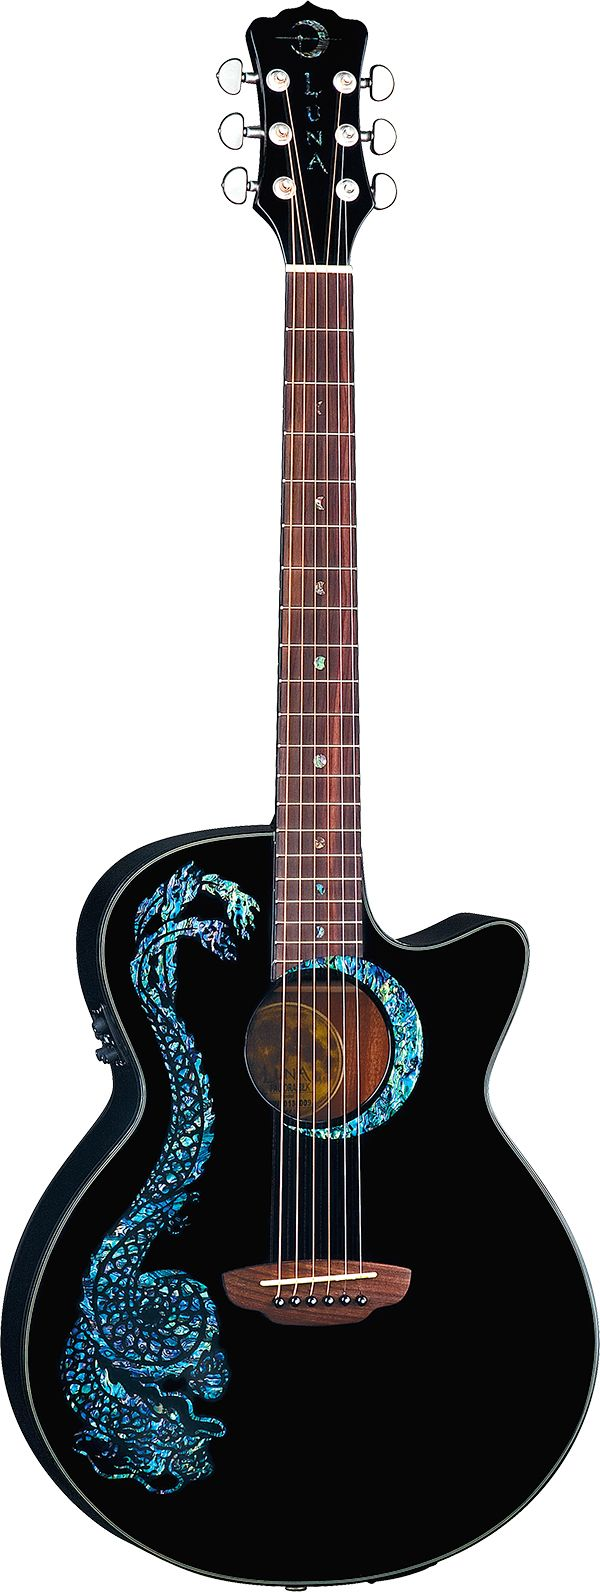 luna guitars fauna dragon acoustic electric guitar luna guitars fauna series guitar. Black Bedroom Furniture Sets. Home Design Ideas